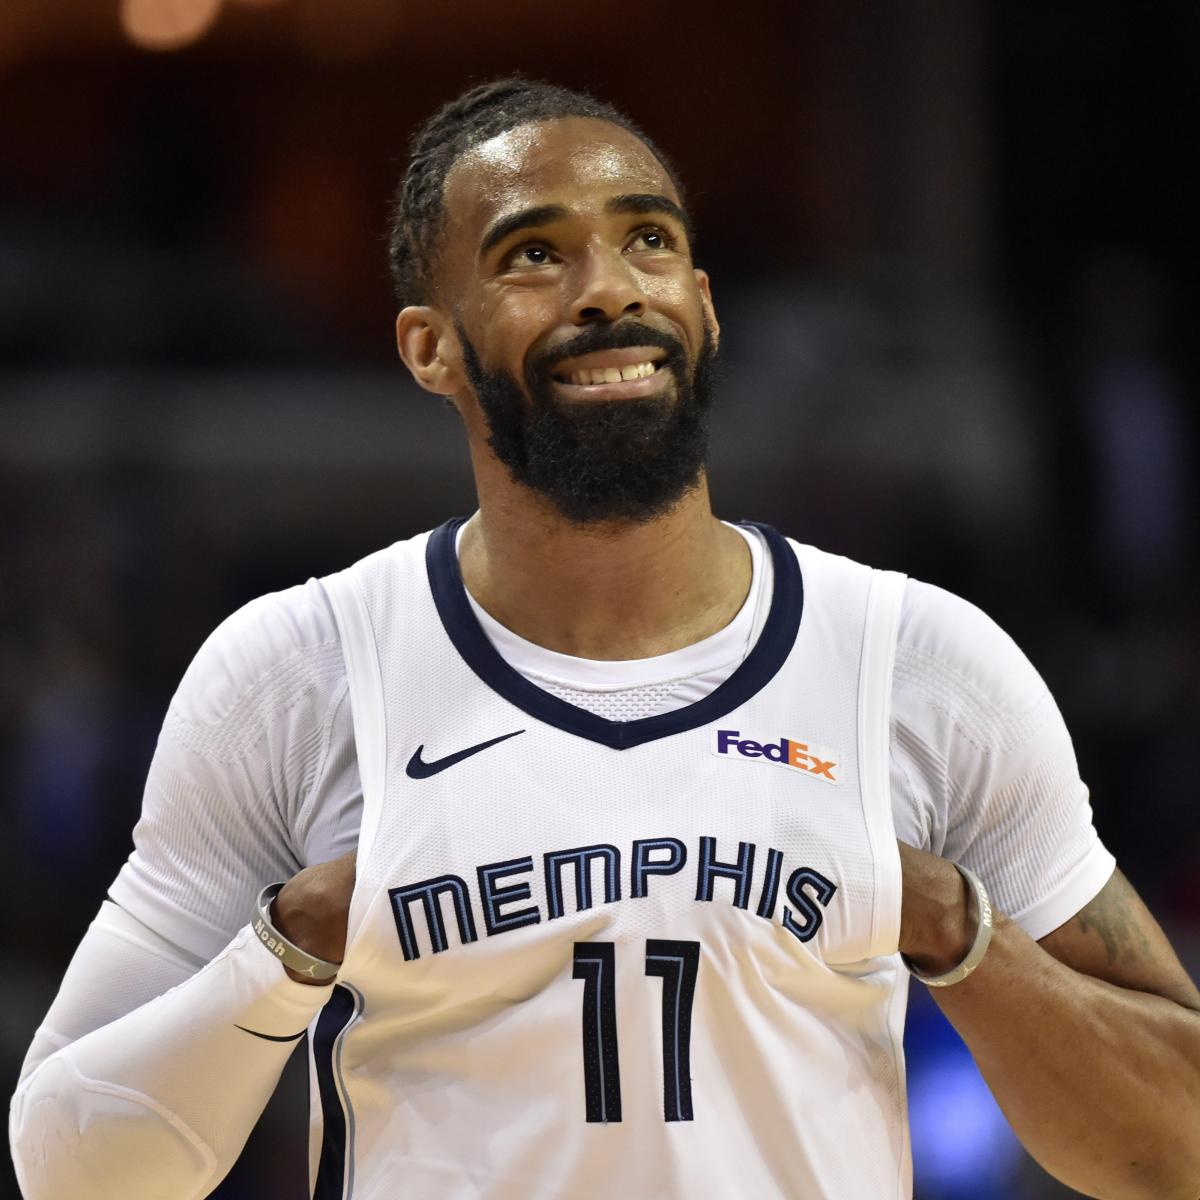 NBA Trade Rumors: Jazz Expected to Make Another Push for Grizzlies' Mike Conley